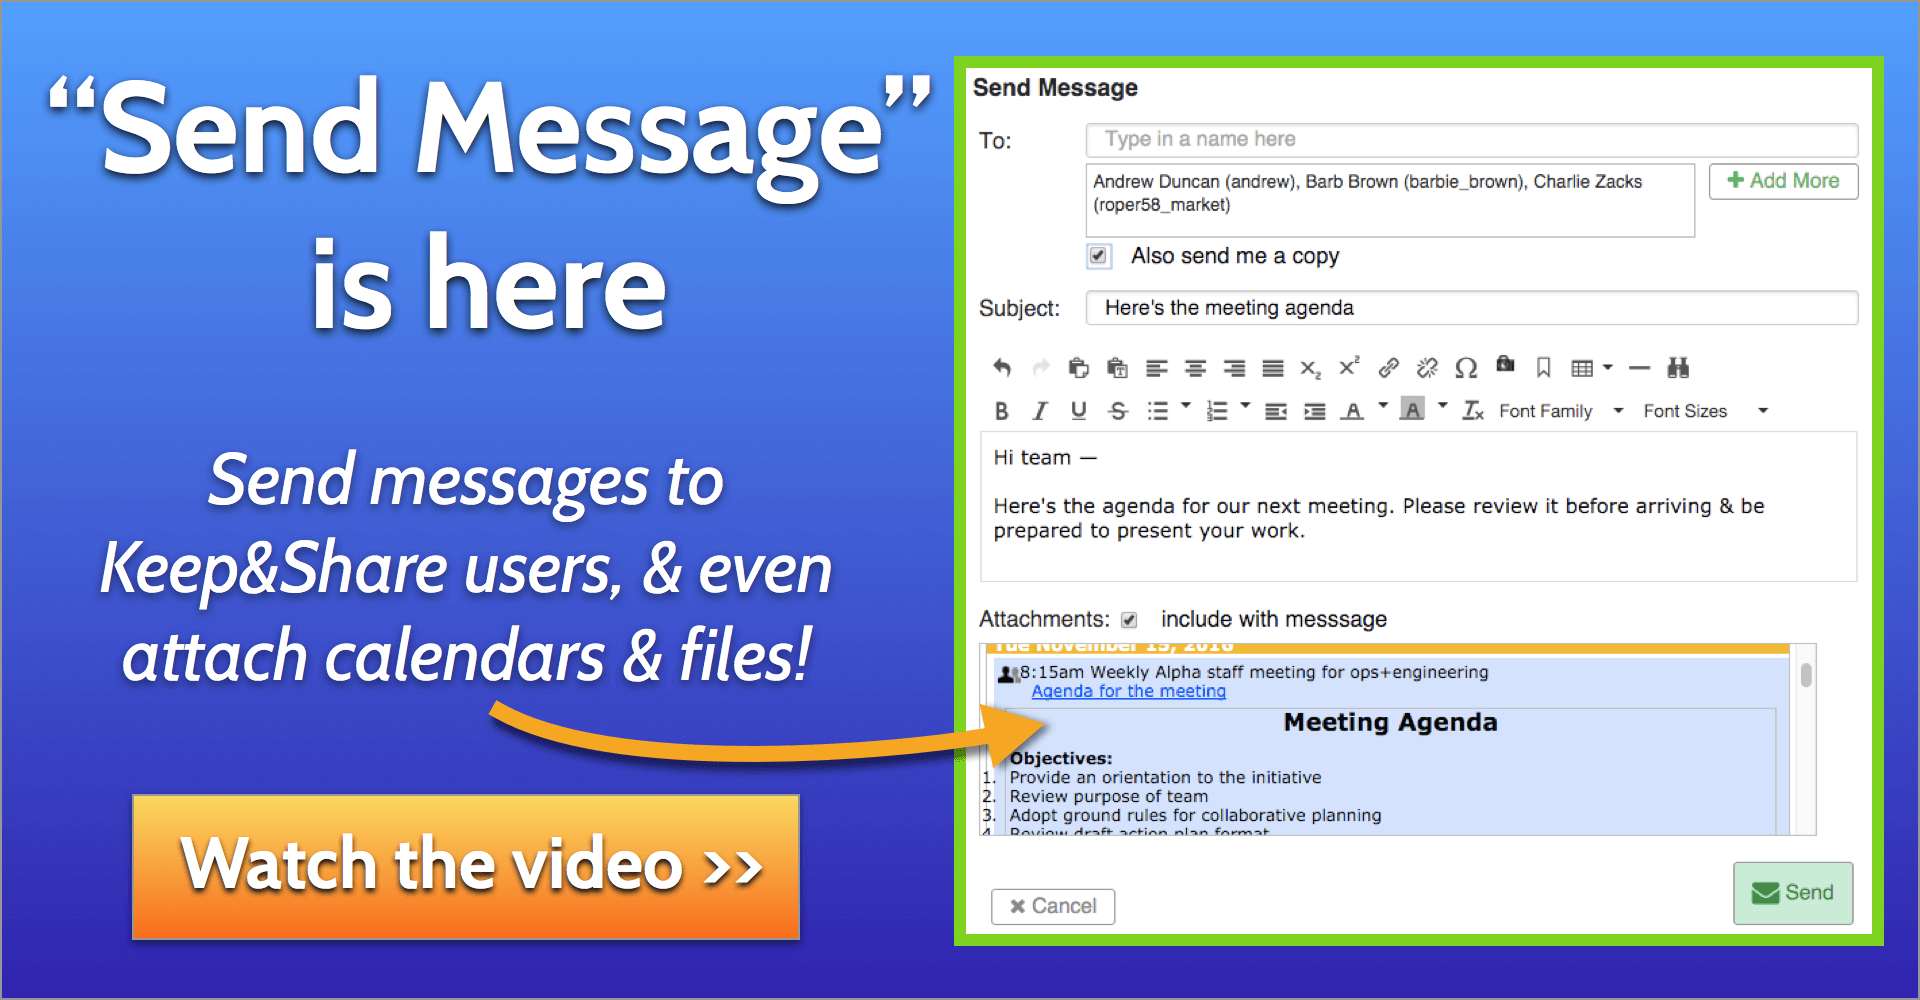 Image is not displayed: Click here to watch the video tour introducing Send Message